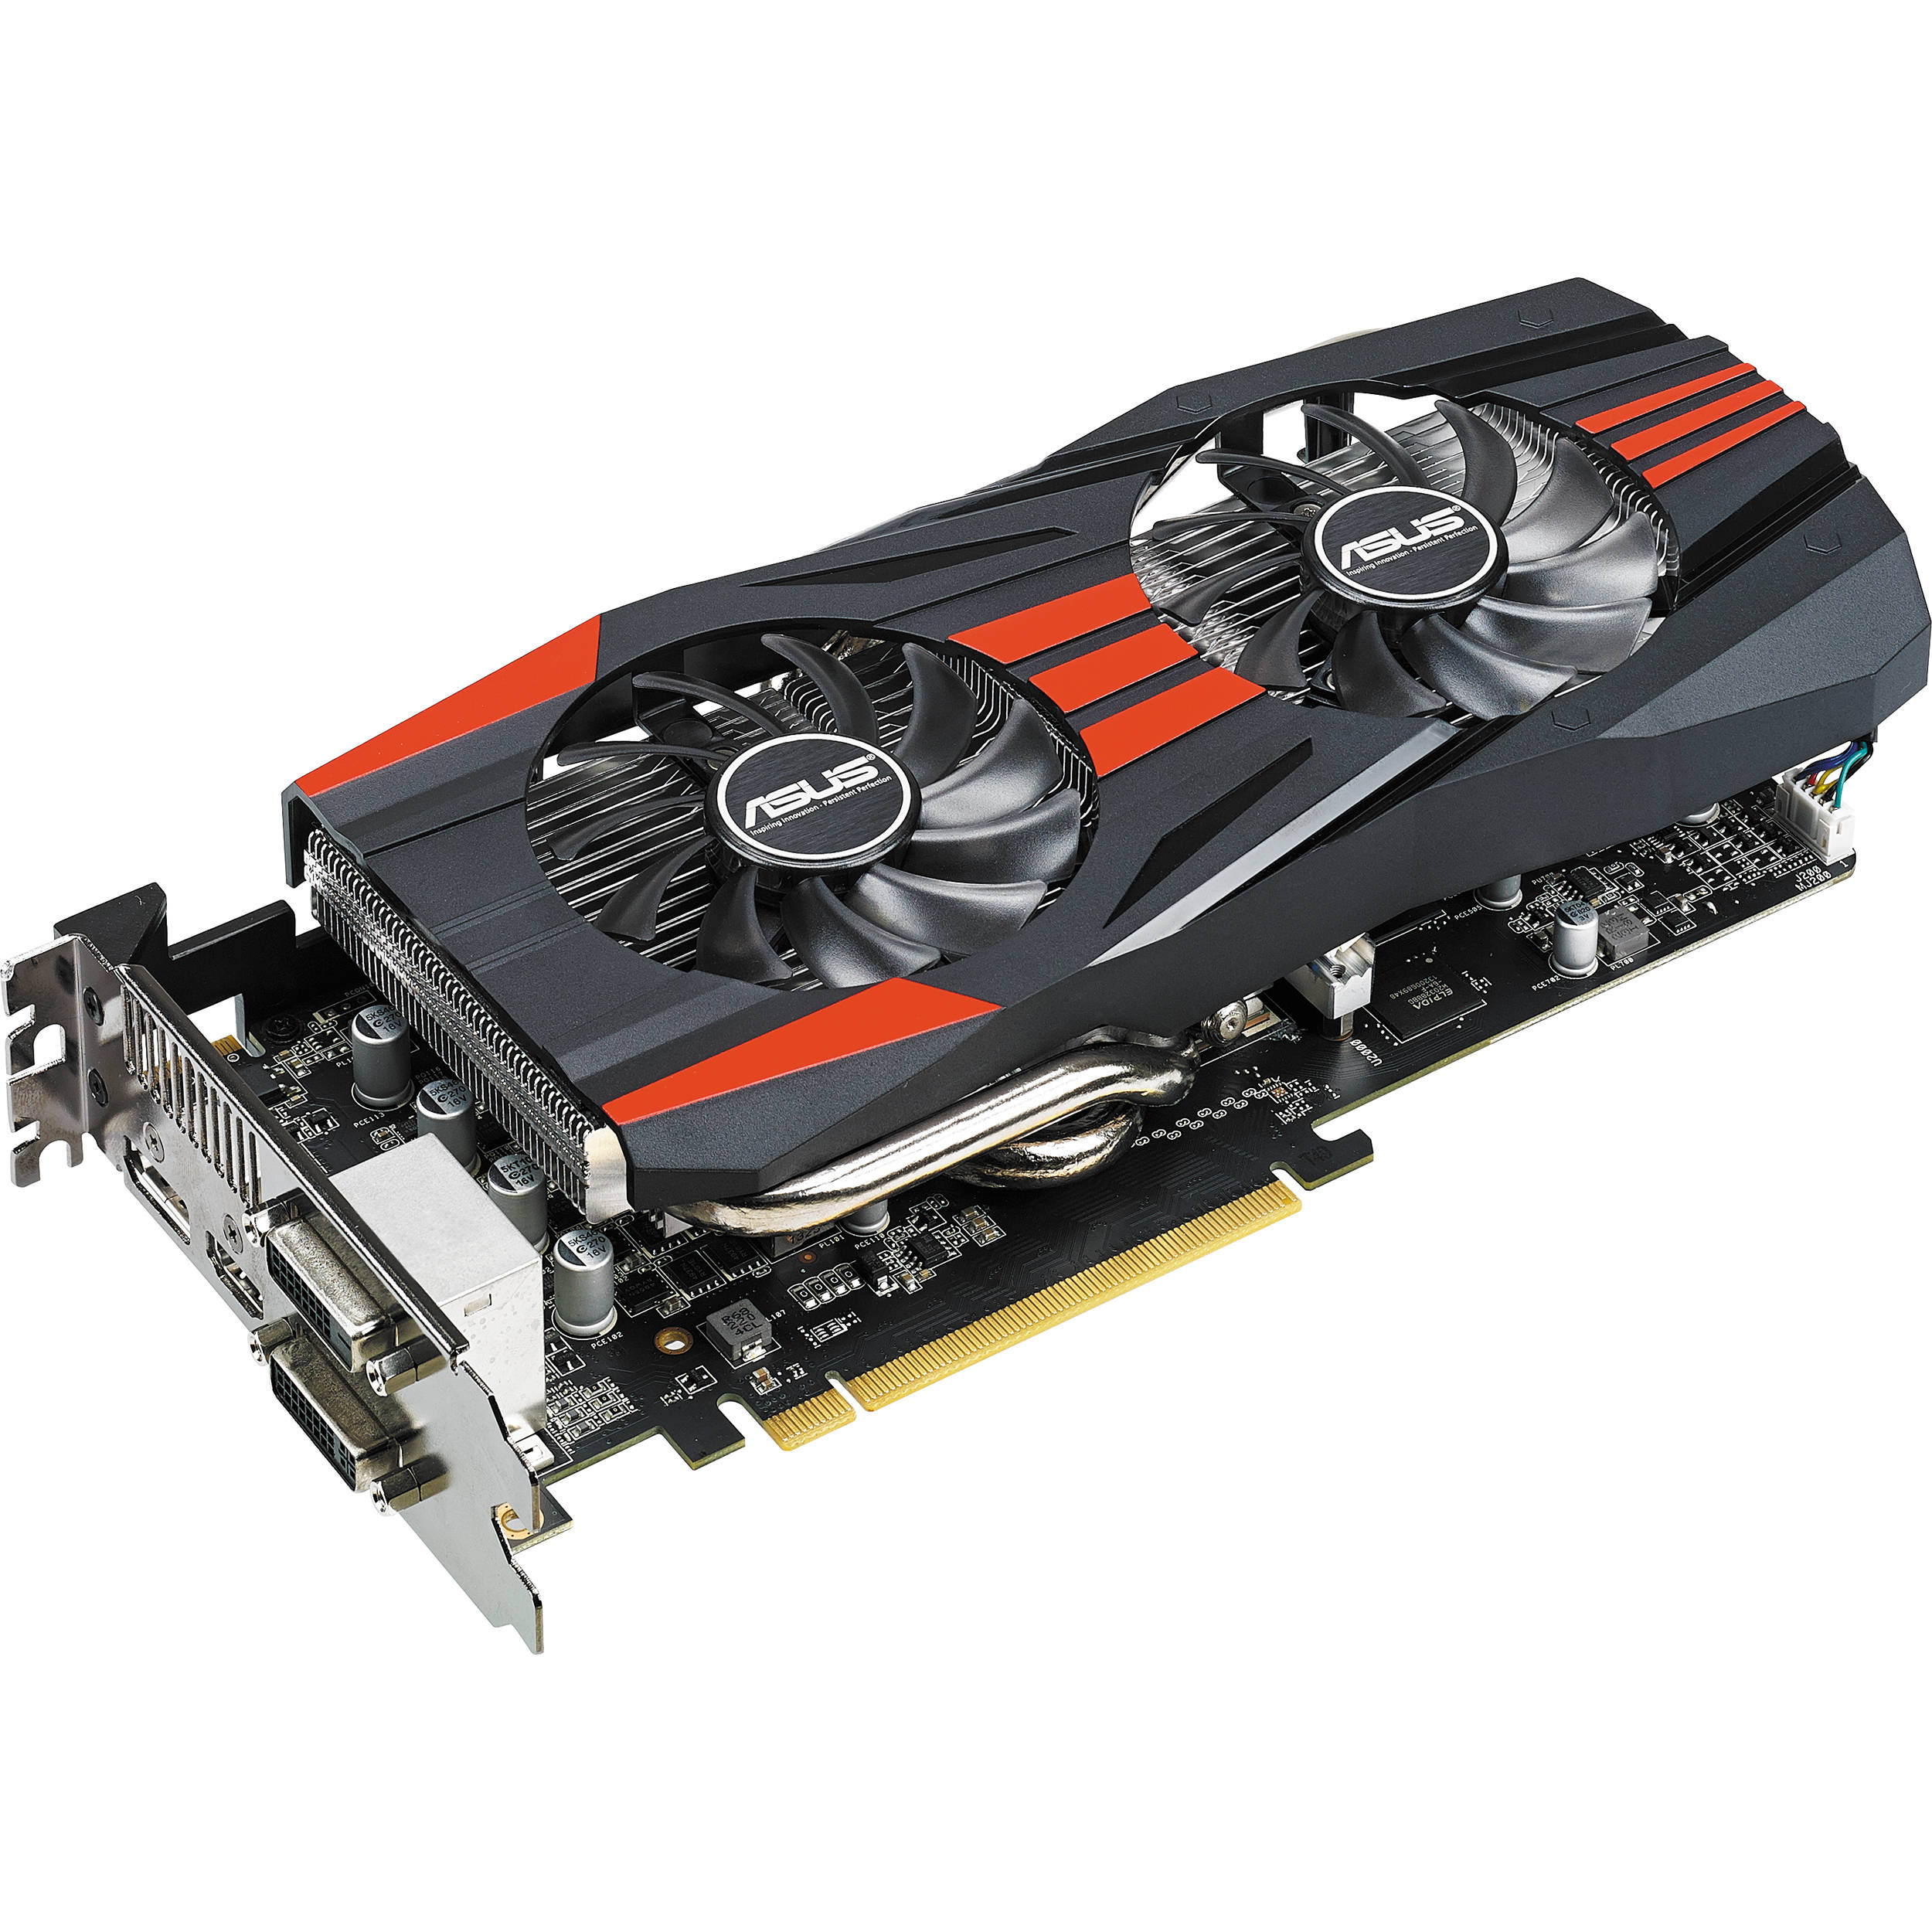 asus amd r9 270x drivers